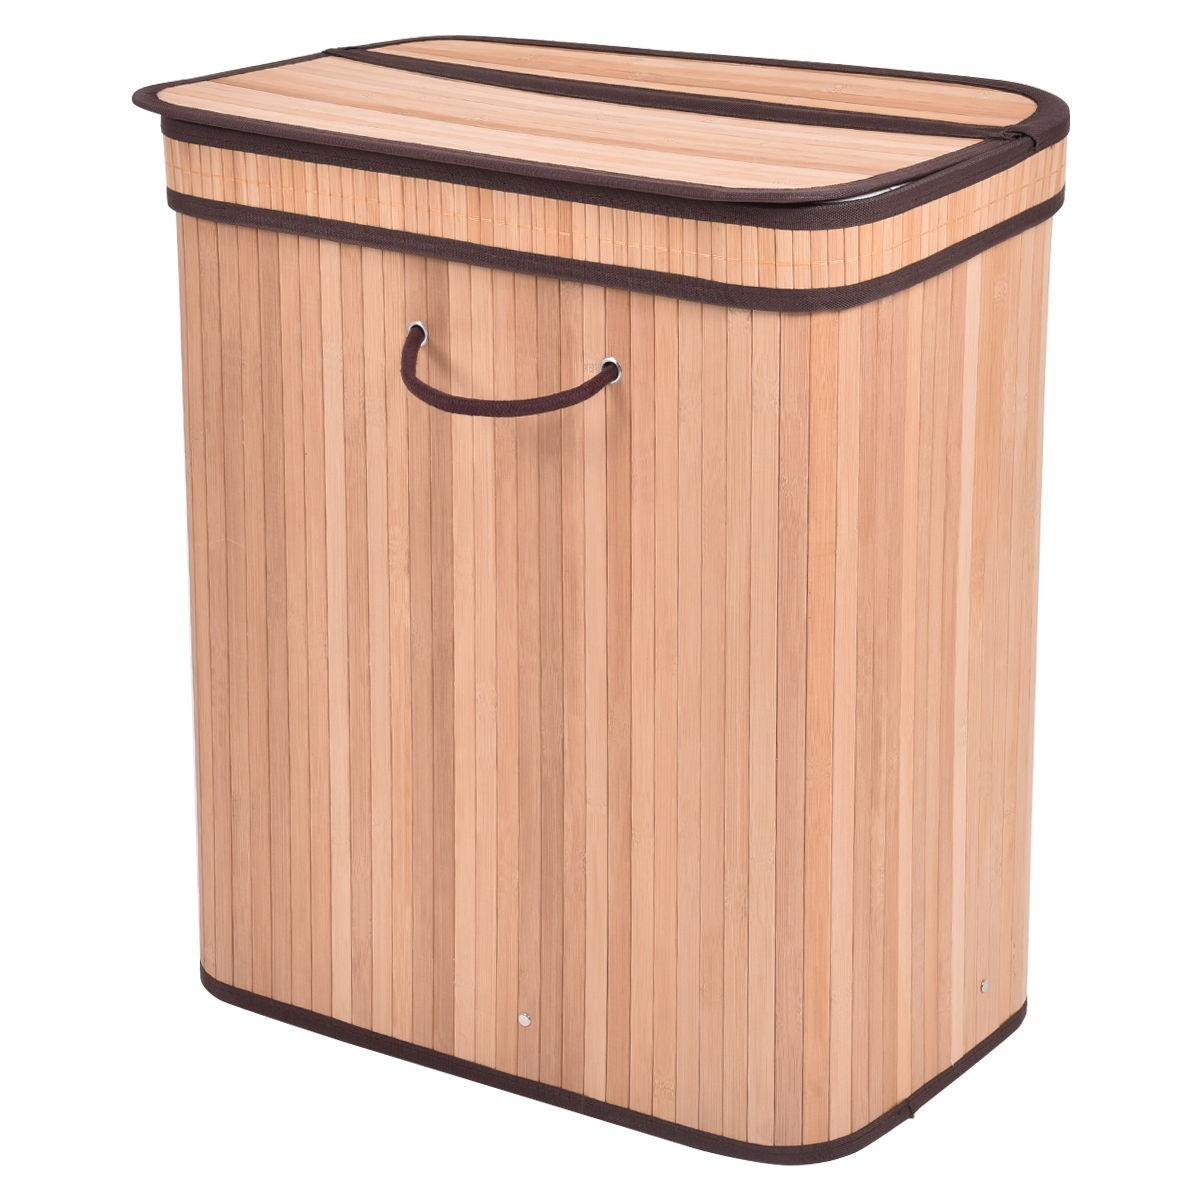 Wood Clothes Hamper With Lid Large Rect Bamboo Laundry Hamper Basket With Lid Natural